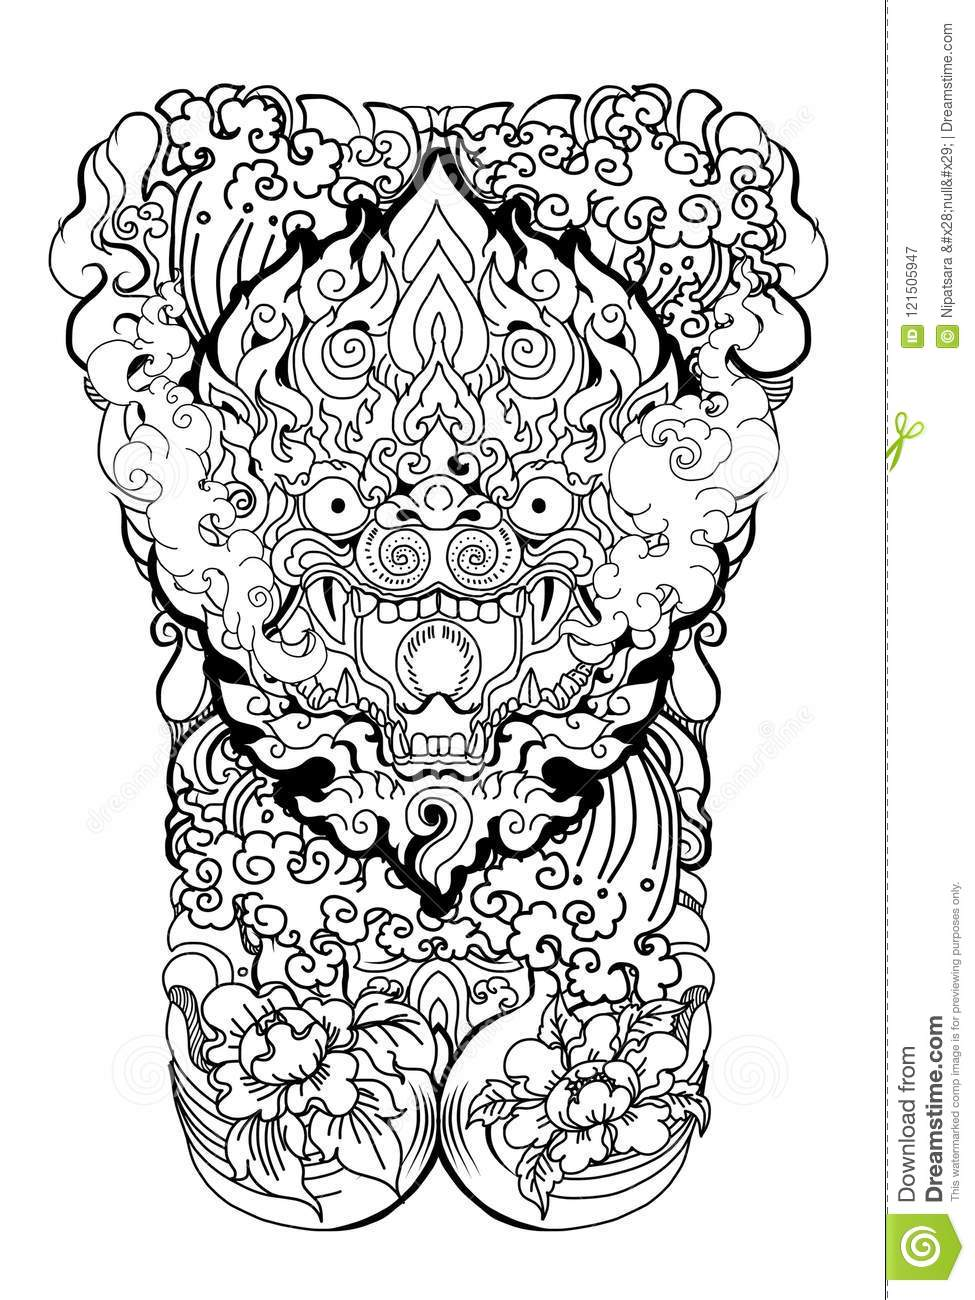 Anuman Monkey Face Design With Wave And Peony Flower On Cloud